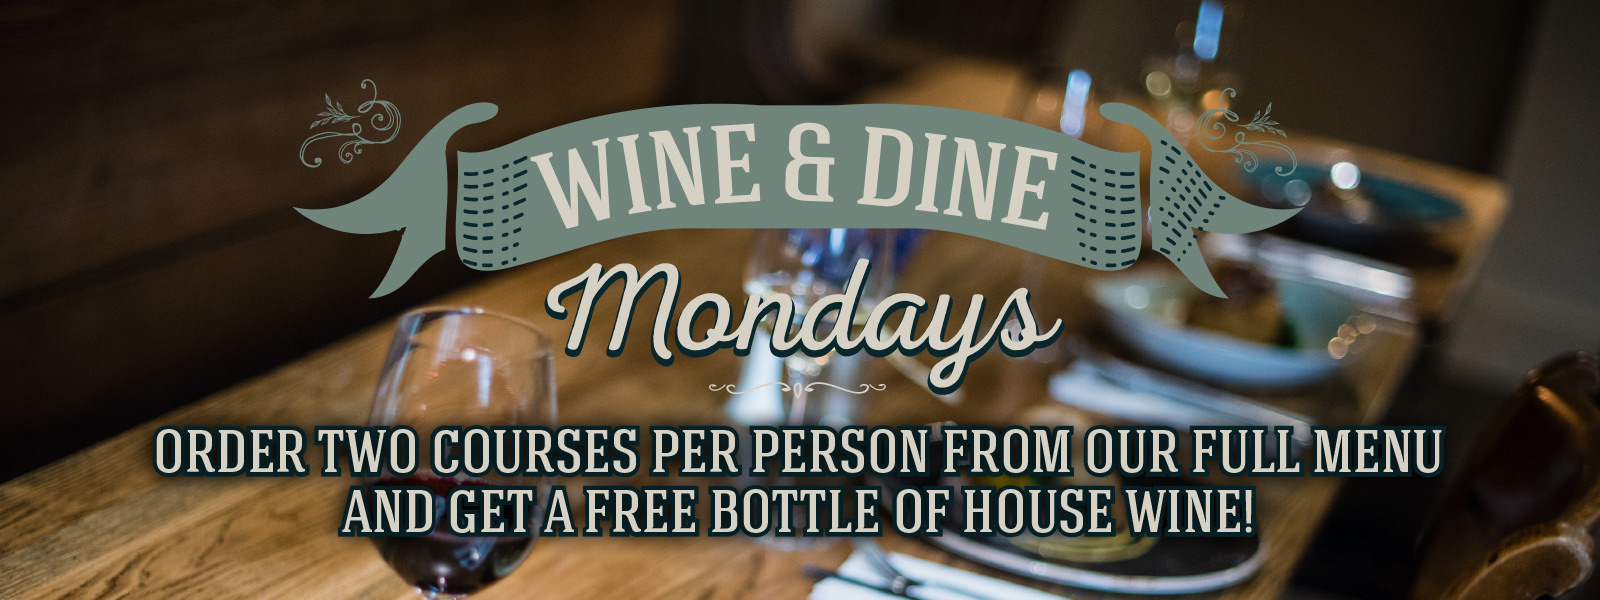 Wine & Dine Mondays at The Littleton Arms